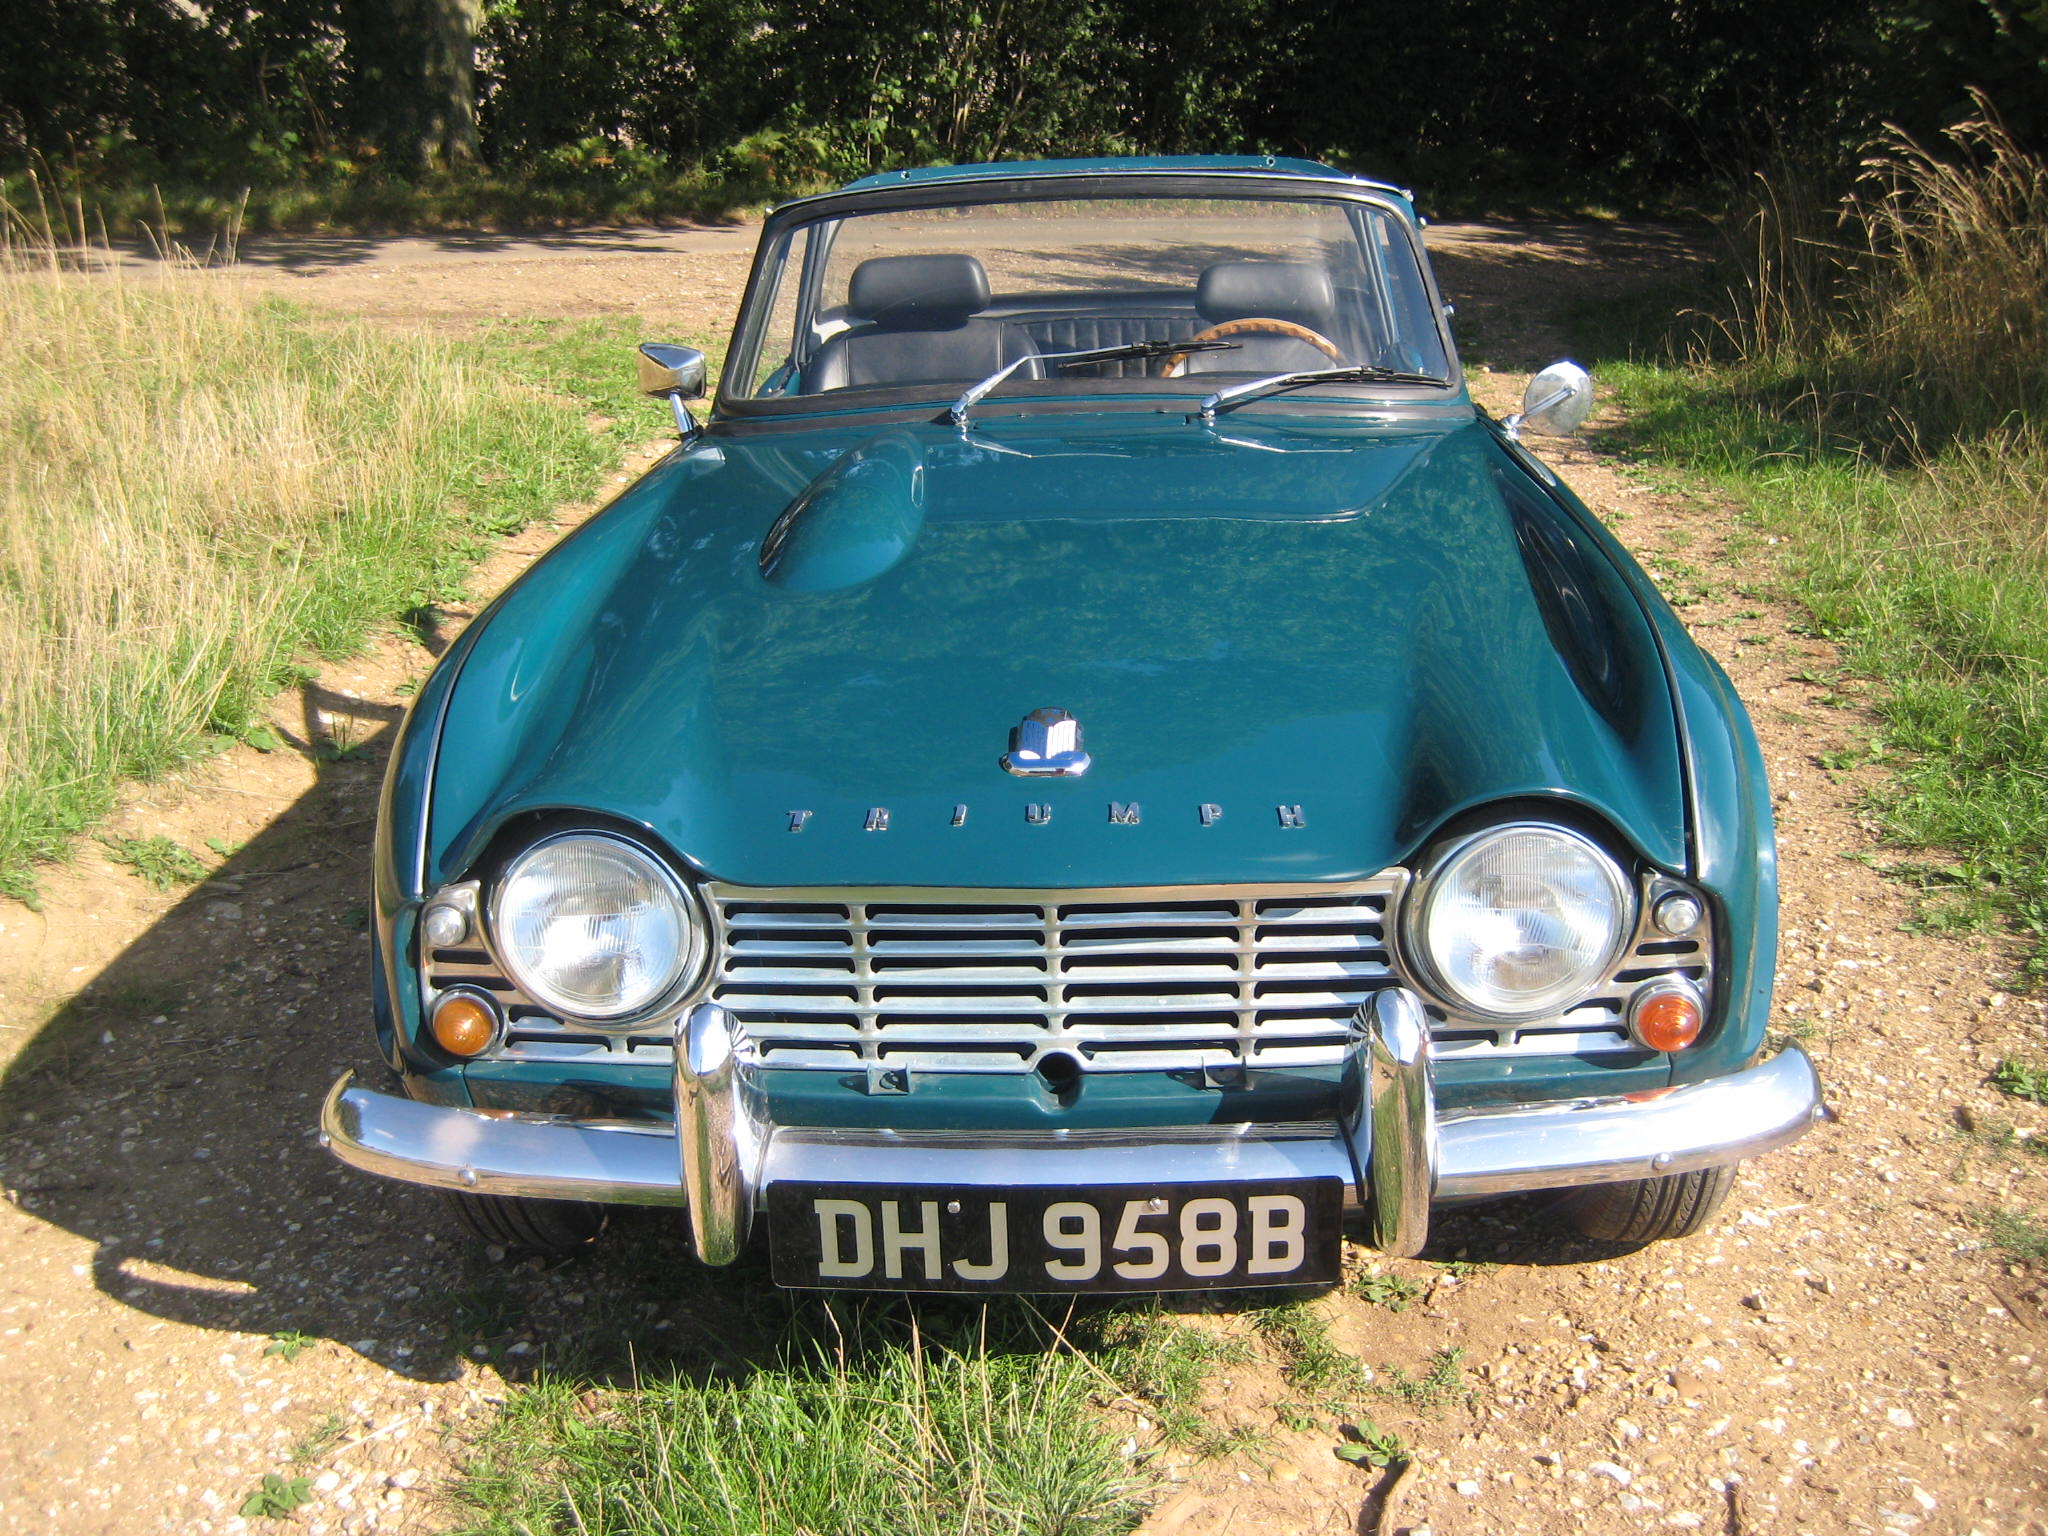 1964 Triumph TR4 LHD SOLD   Valley Cars and Classics